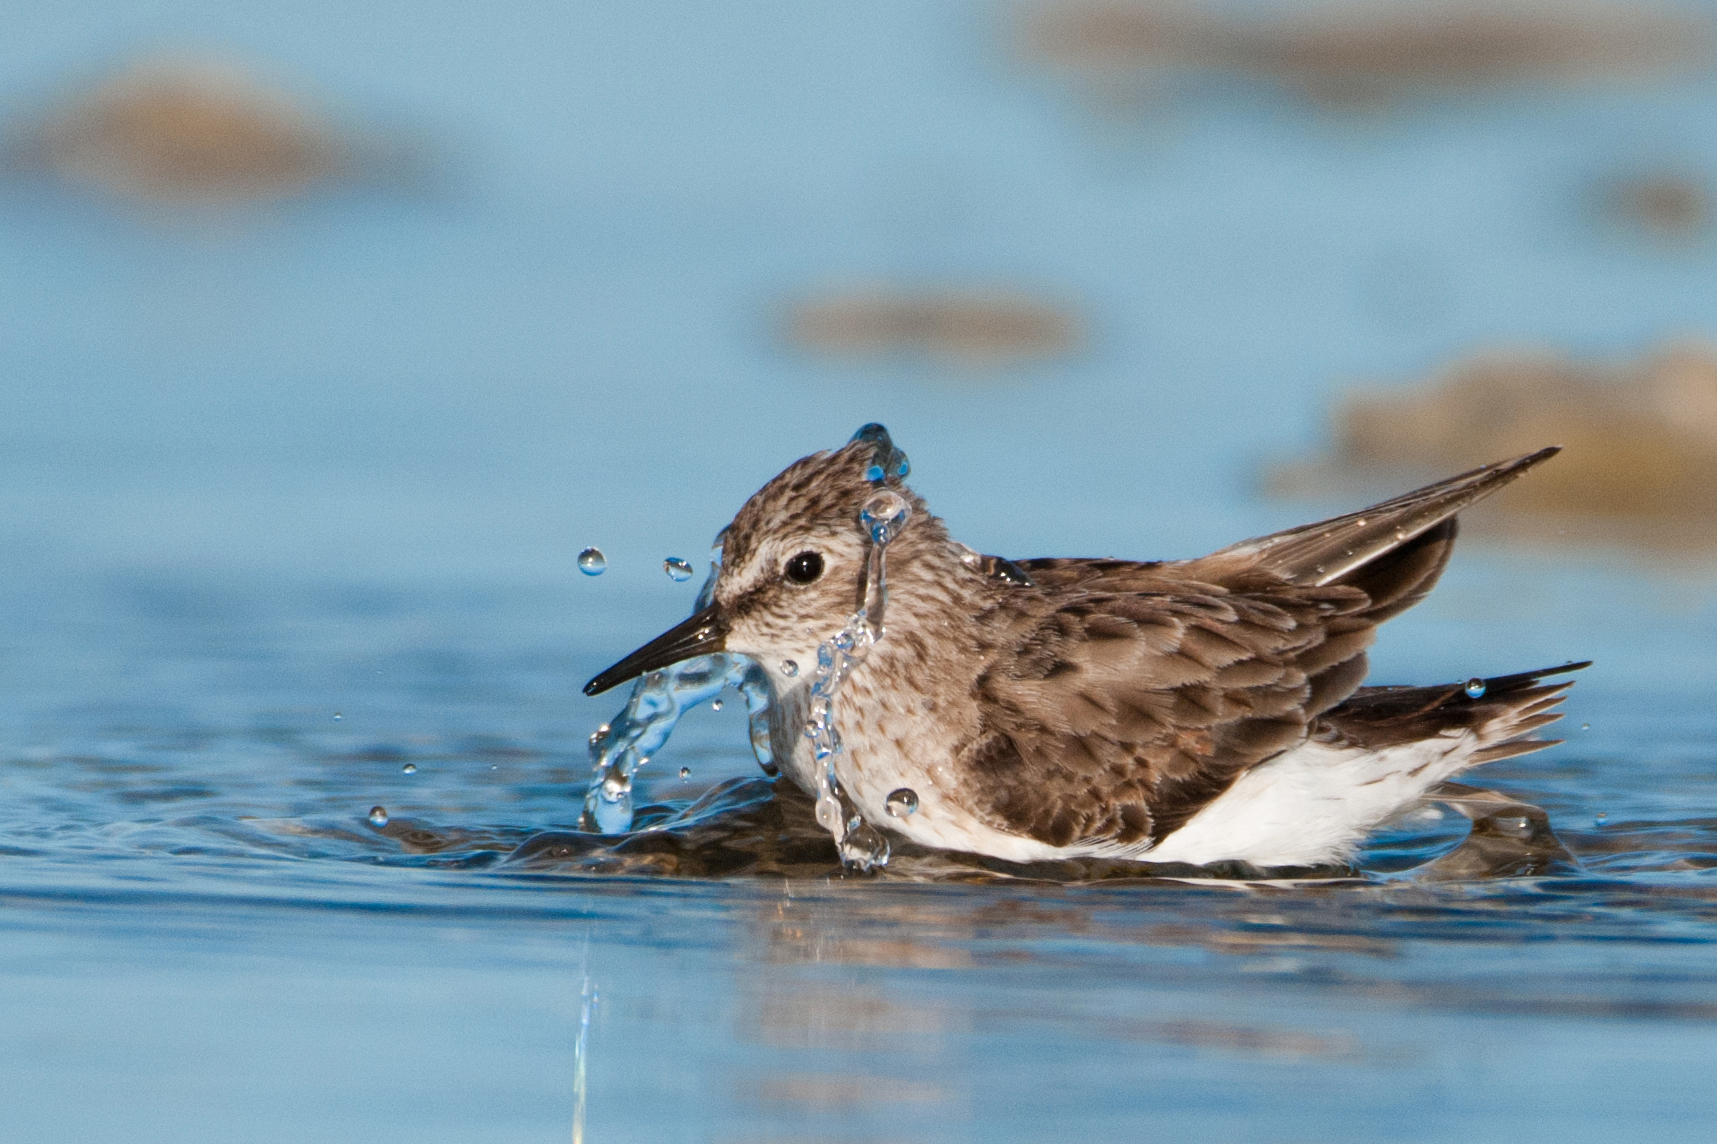 A Least Sandpiper splashing on the water. Water droplets surround it from the splash.